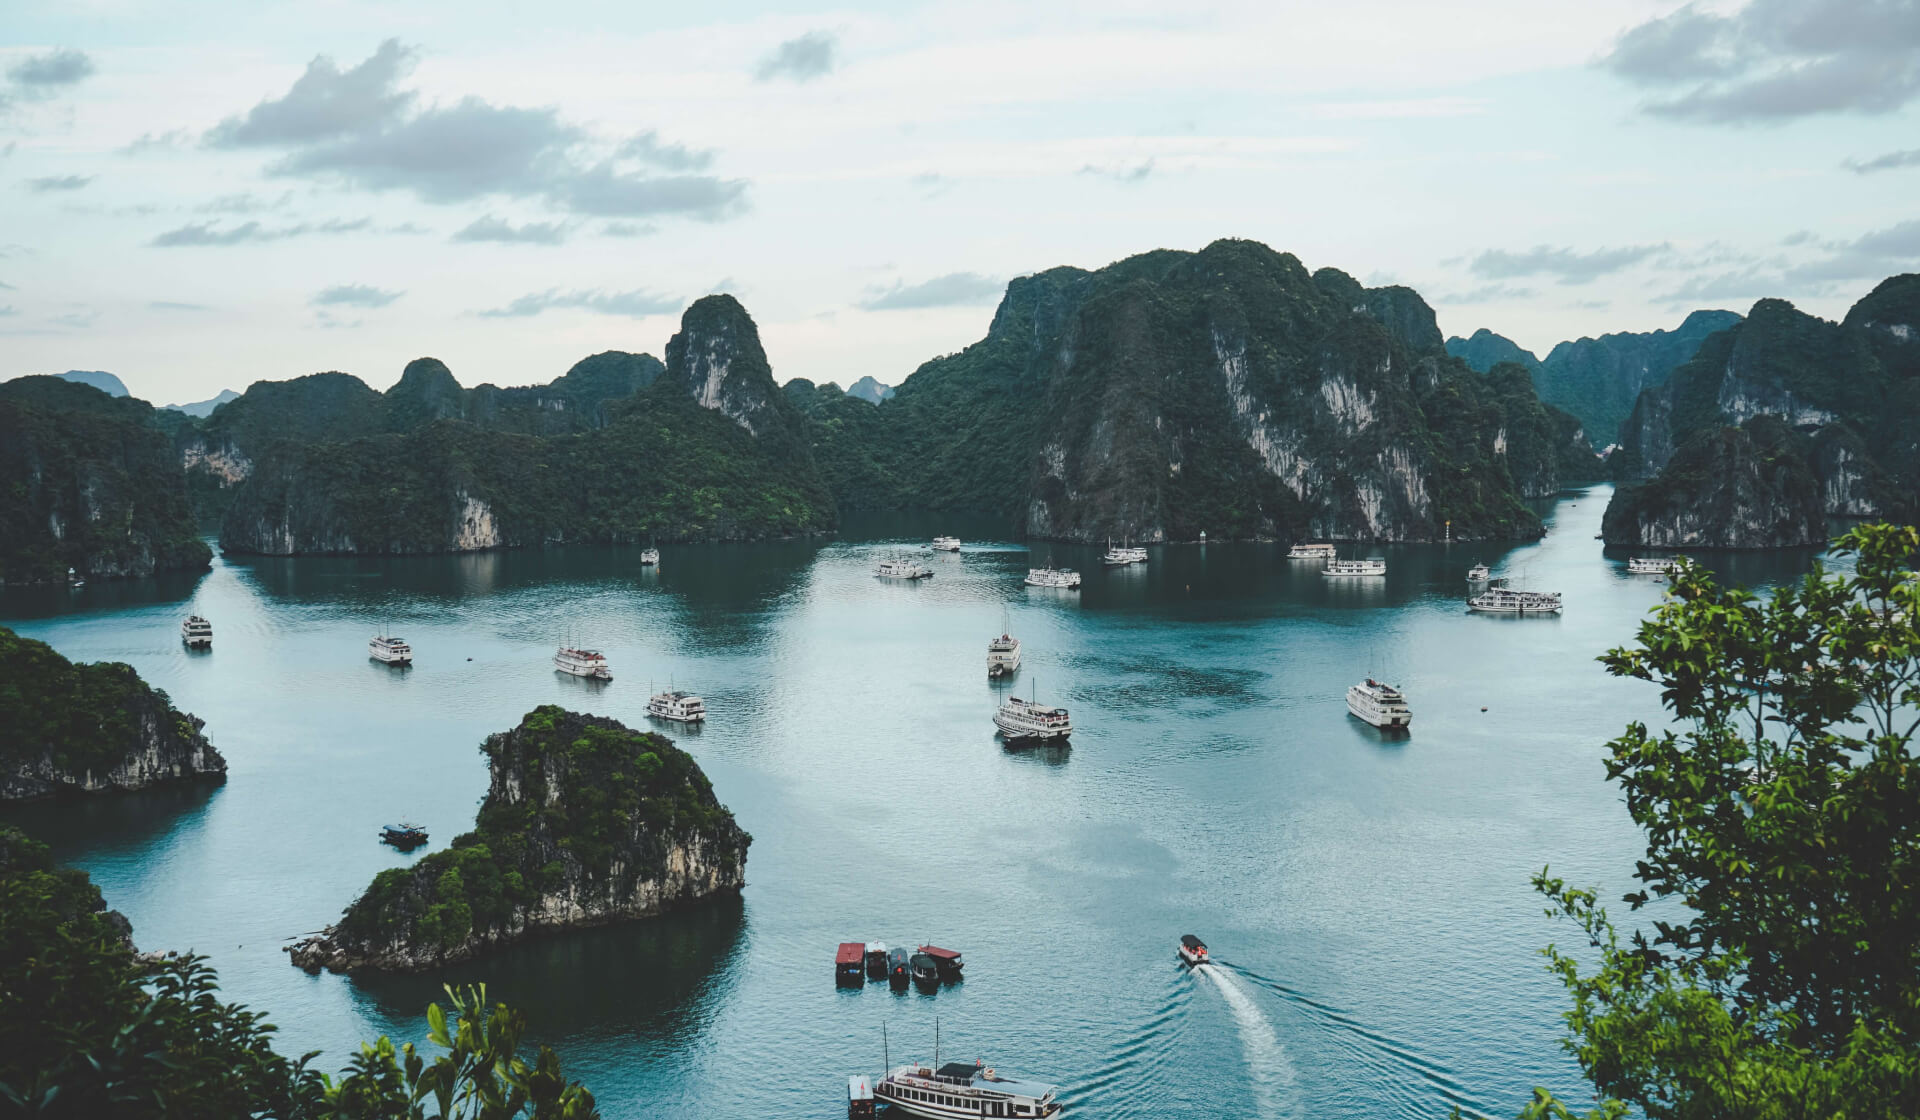 Aerial view of boats in blue water surrounded by green mountains in Halong Bay, Vietnam